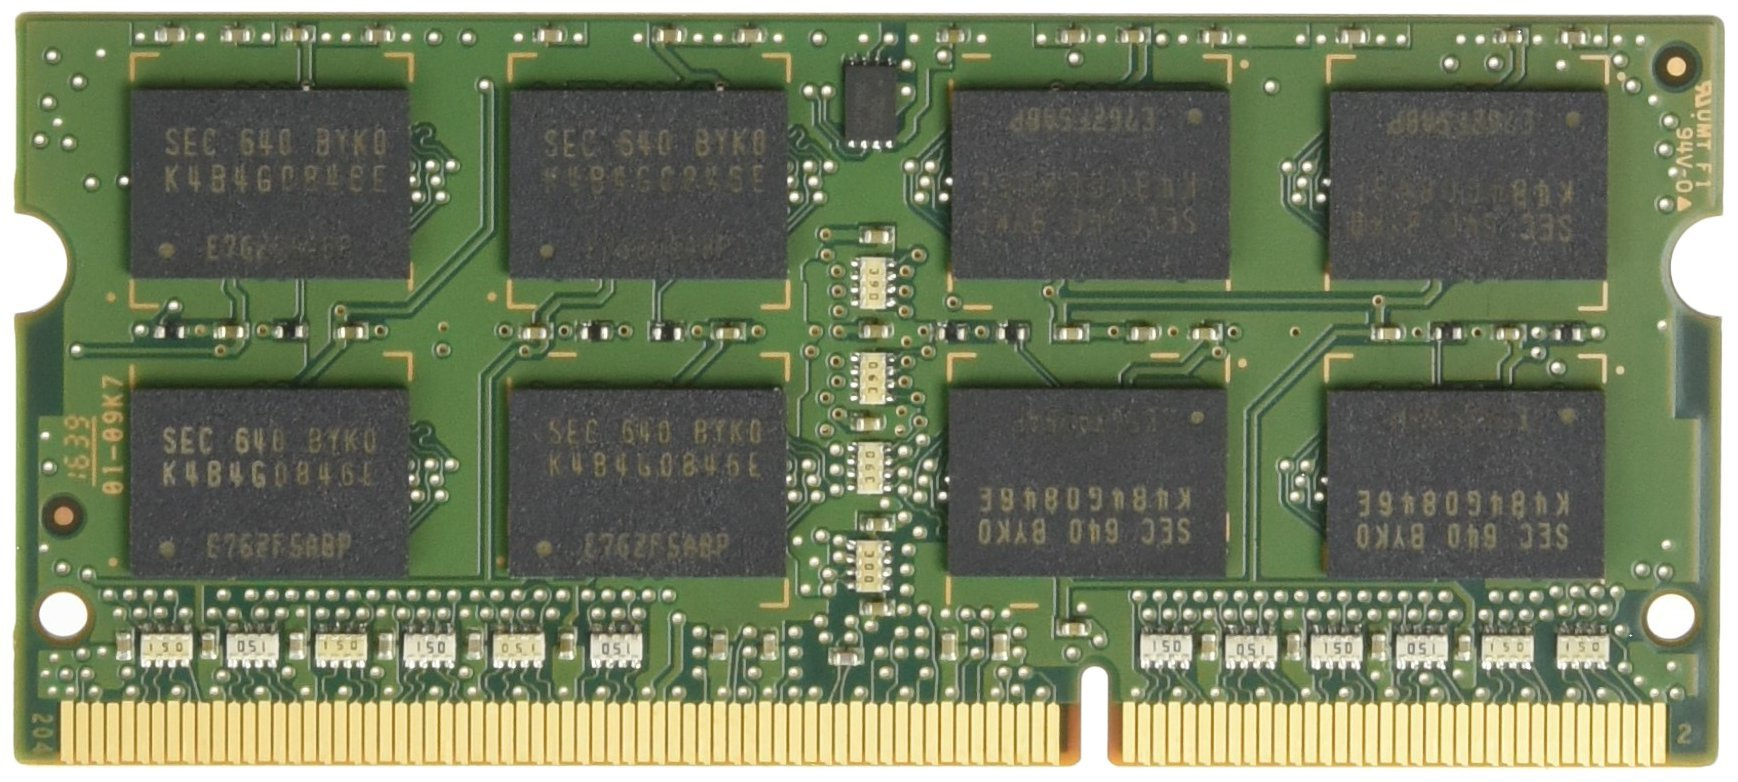 Dell 8GB DDR3L-1600 PC3L-12800 204Pin Sodimm Low Voltage RAM Memory Upgrade P/N SNPN2M64C/8G by Dell